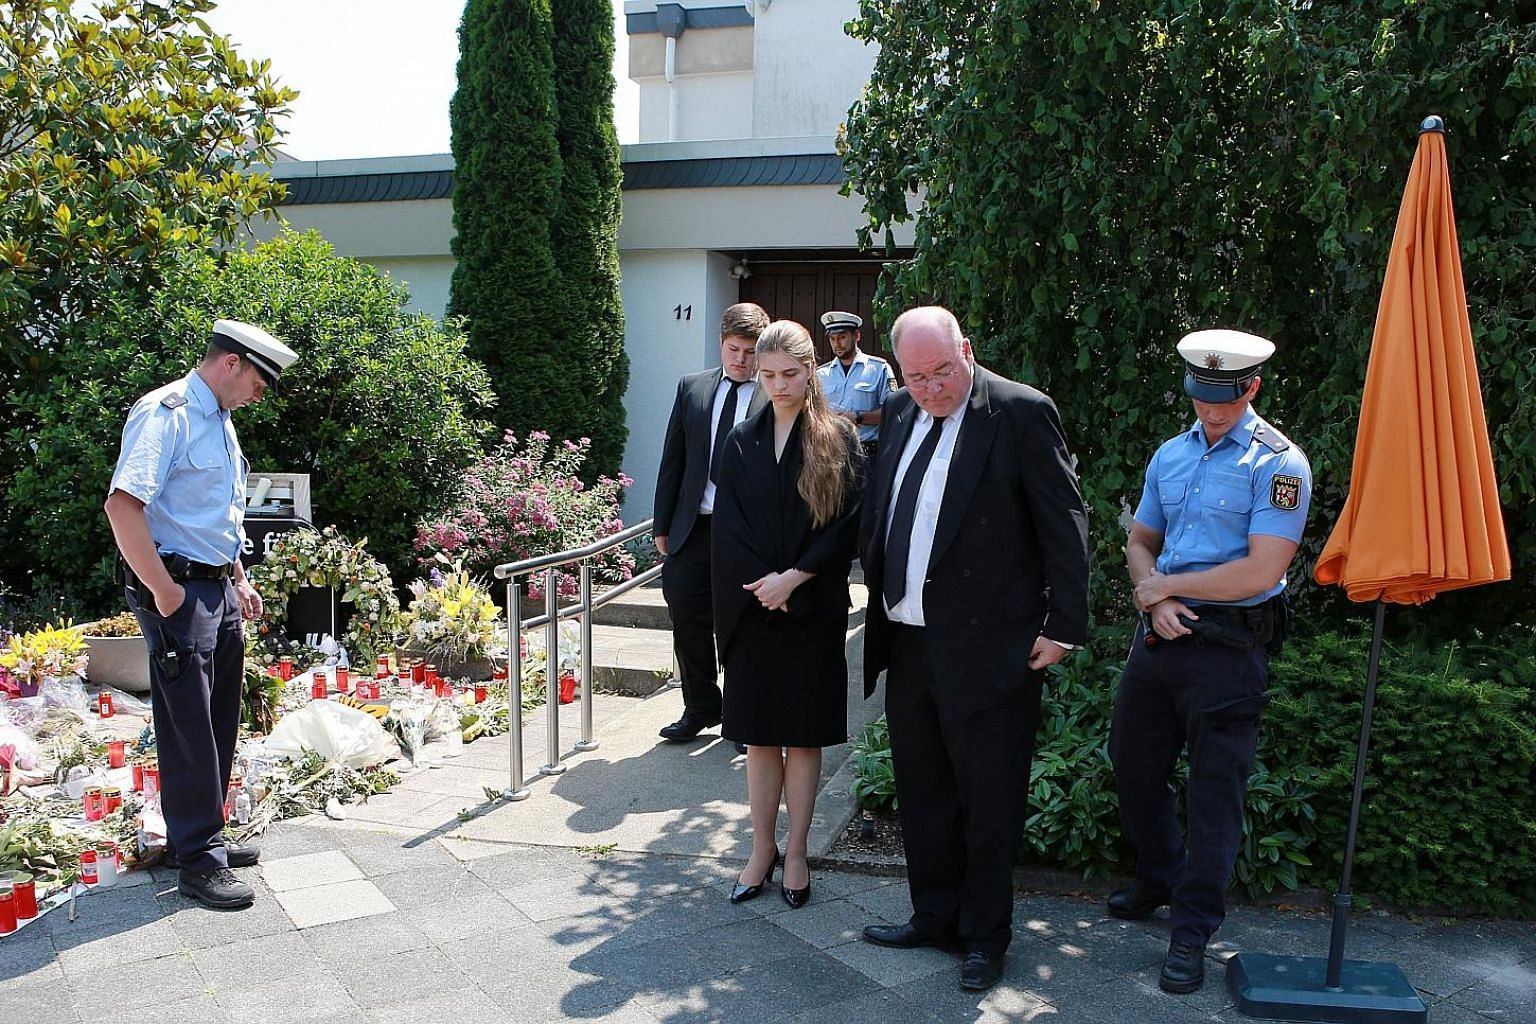 Above: Mr Helmut Kohl died on Friday at the age of 87. Left: Mr Walter Kohl, his son, and his niece were seen standing outside the late former German chancellor's home in Oggersheim, Ludwigshafen, on Wednesday after being turned away at the door in f